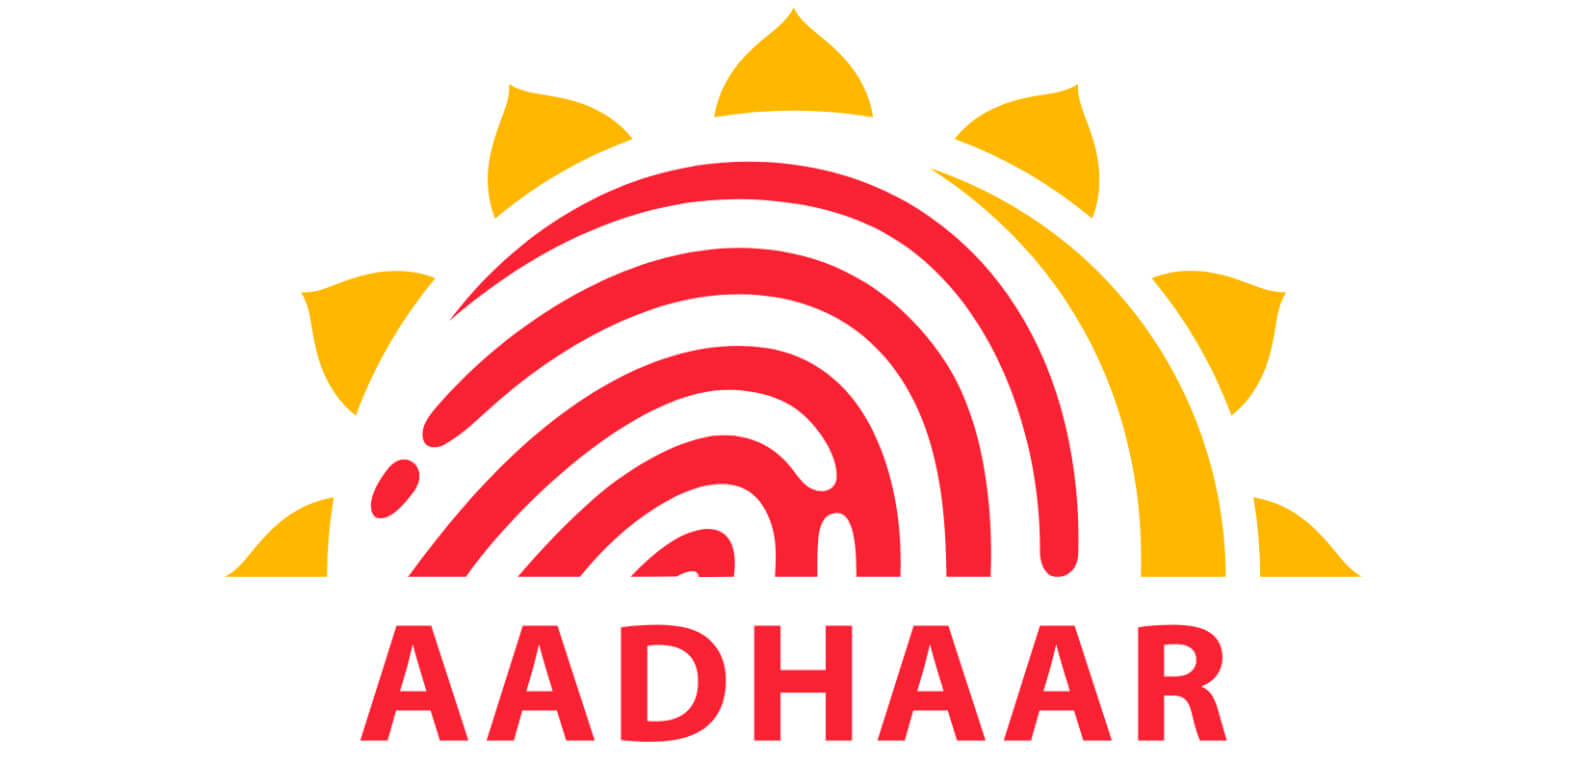 aadhaar data breach